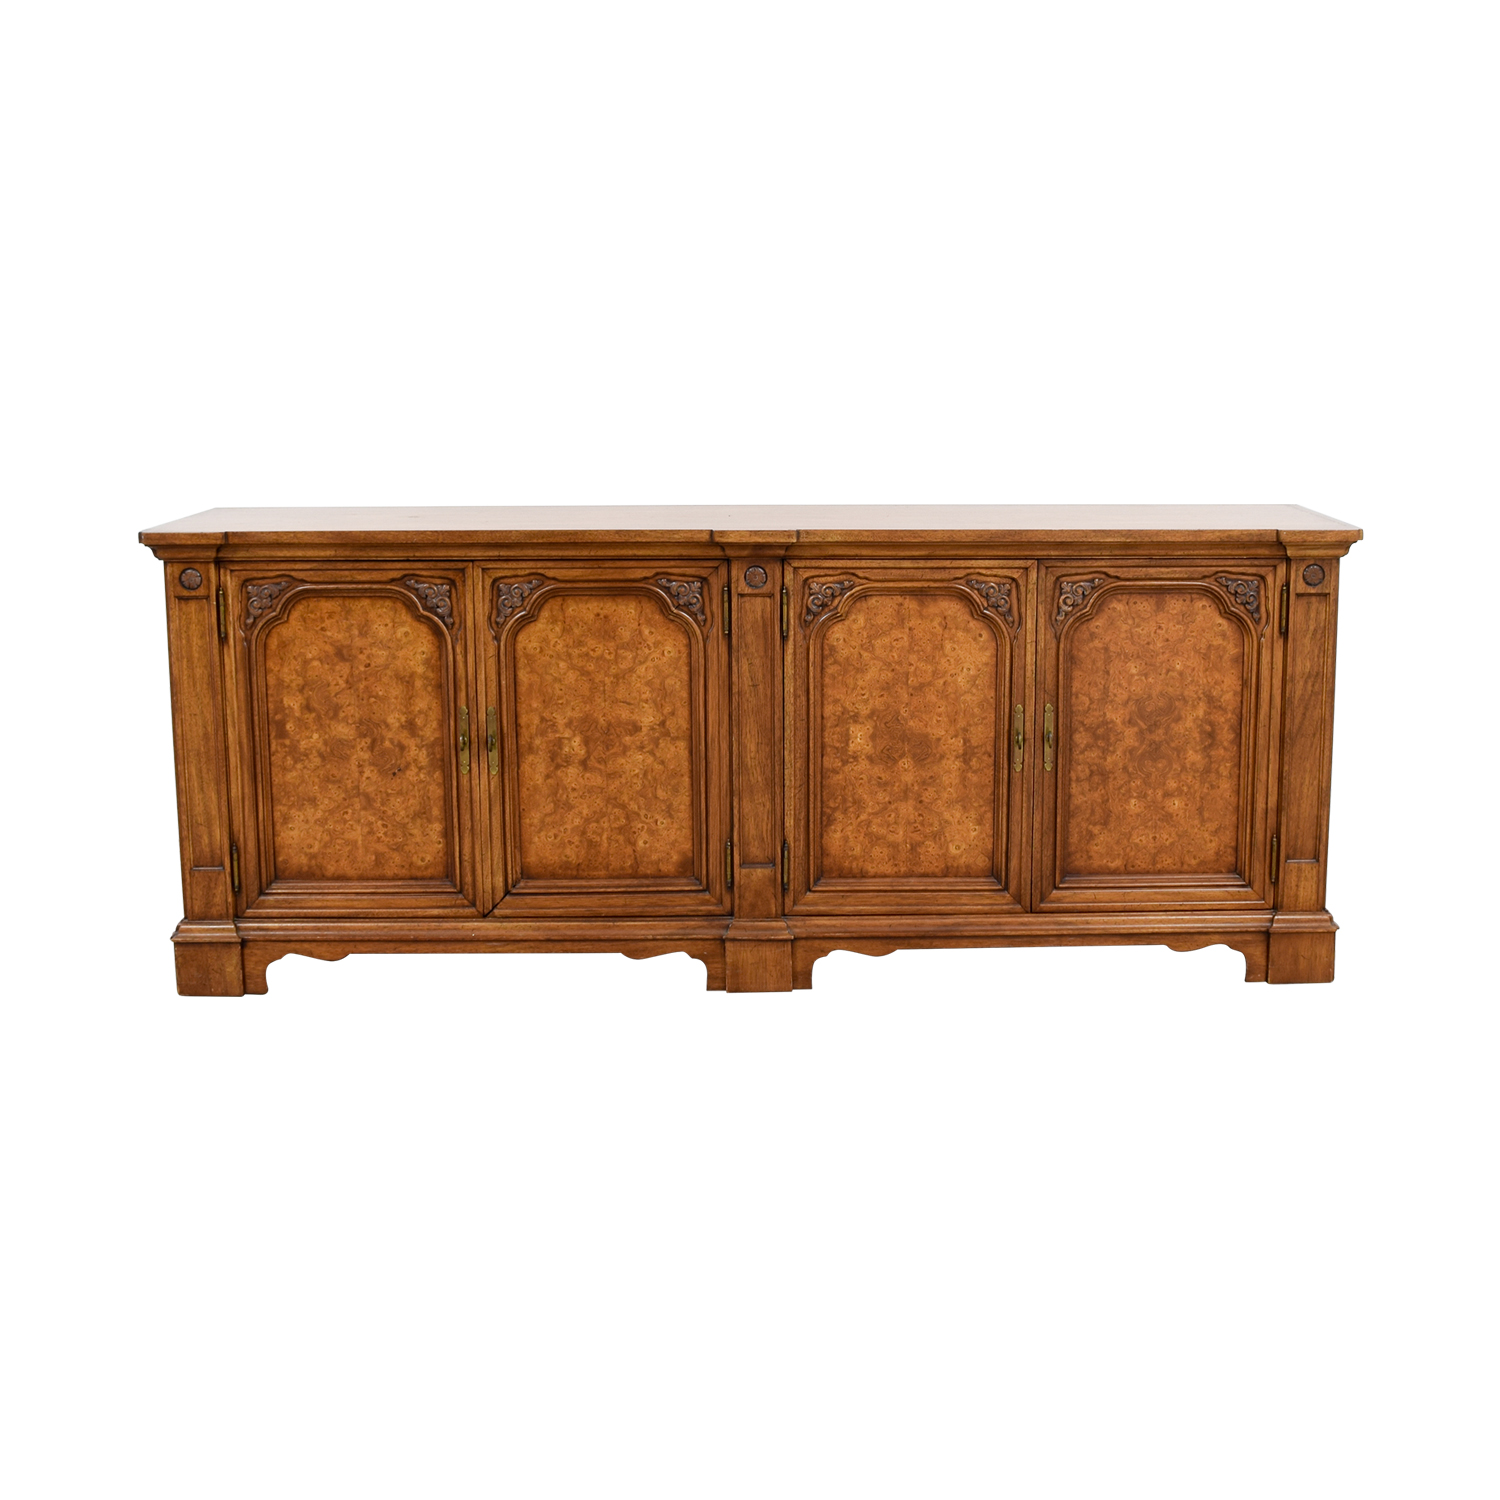 Ornate Wooden Buffet dimensions